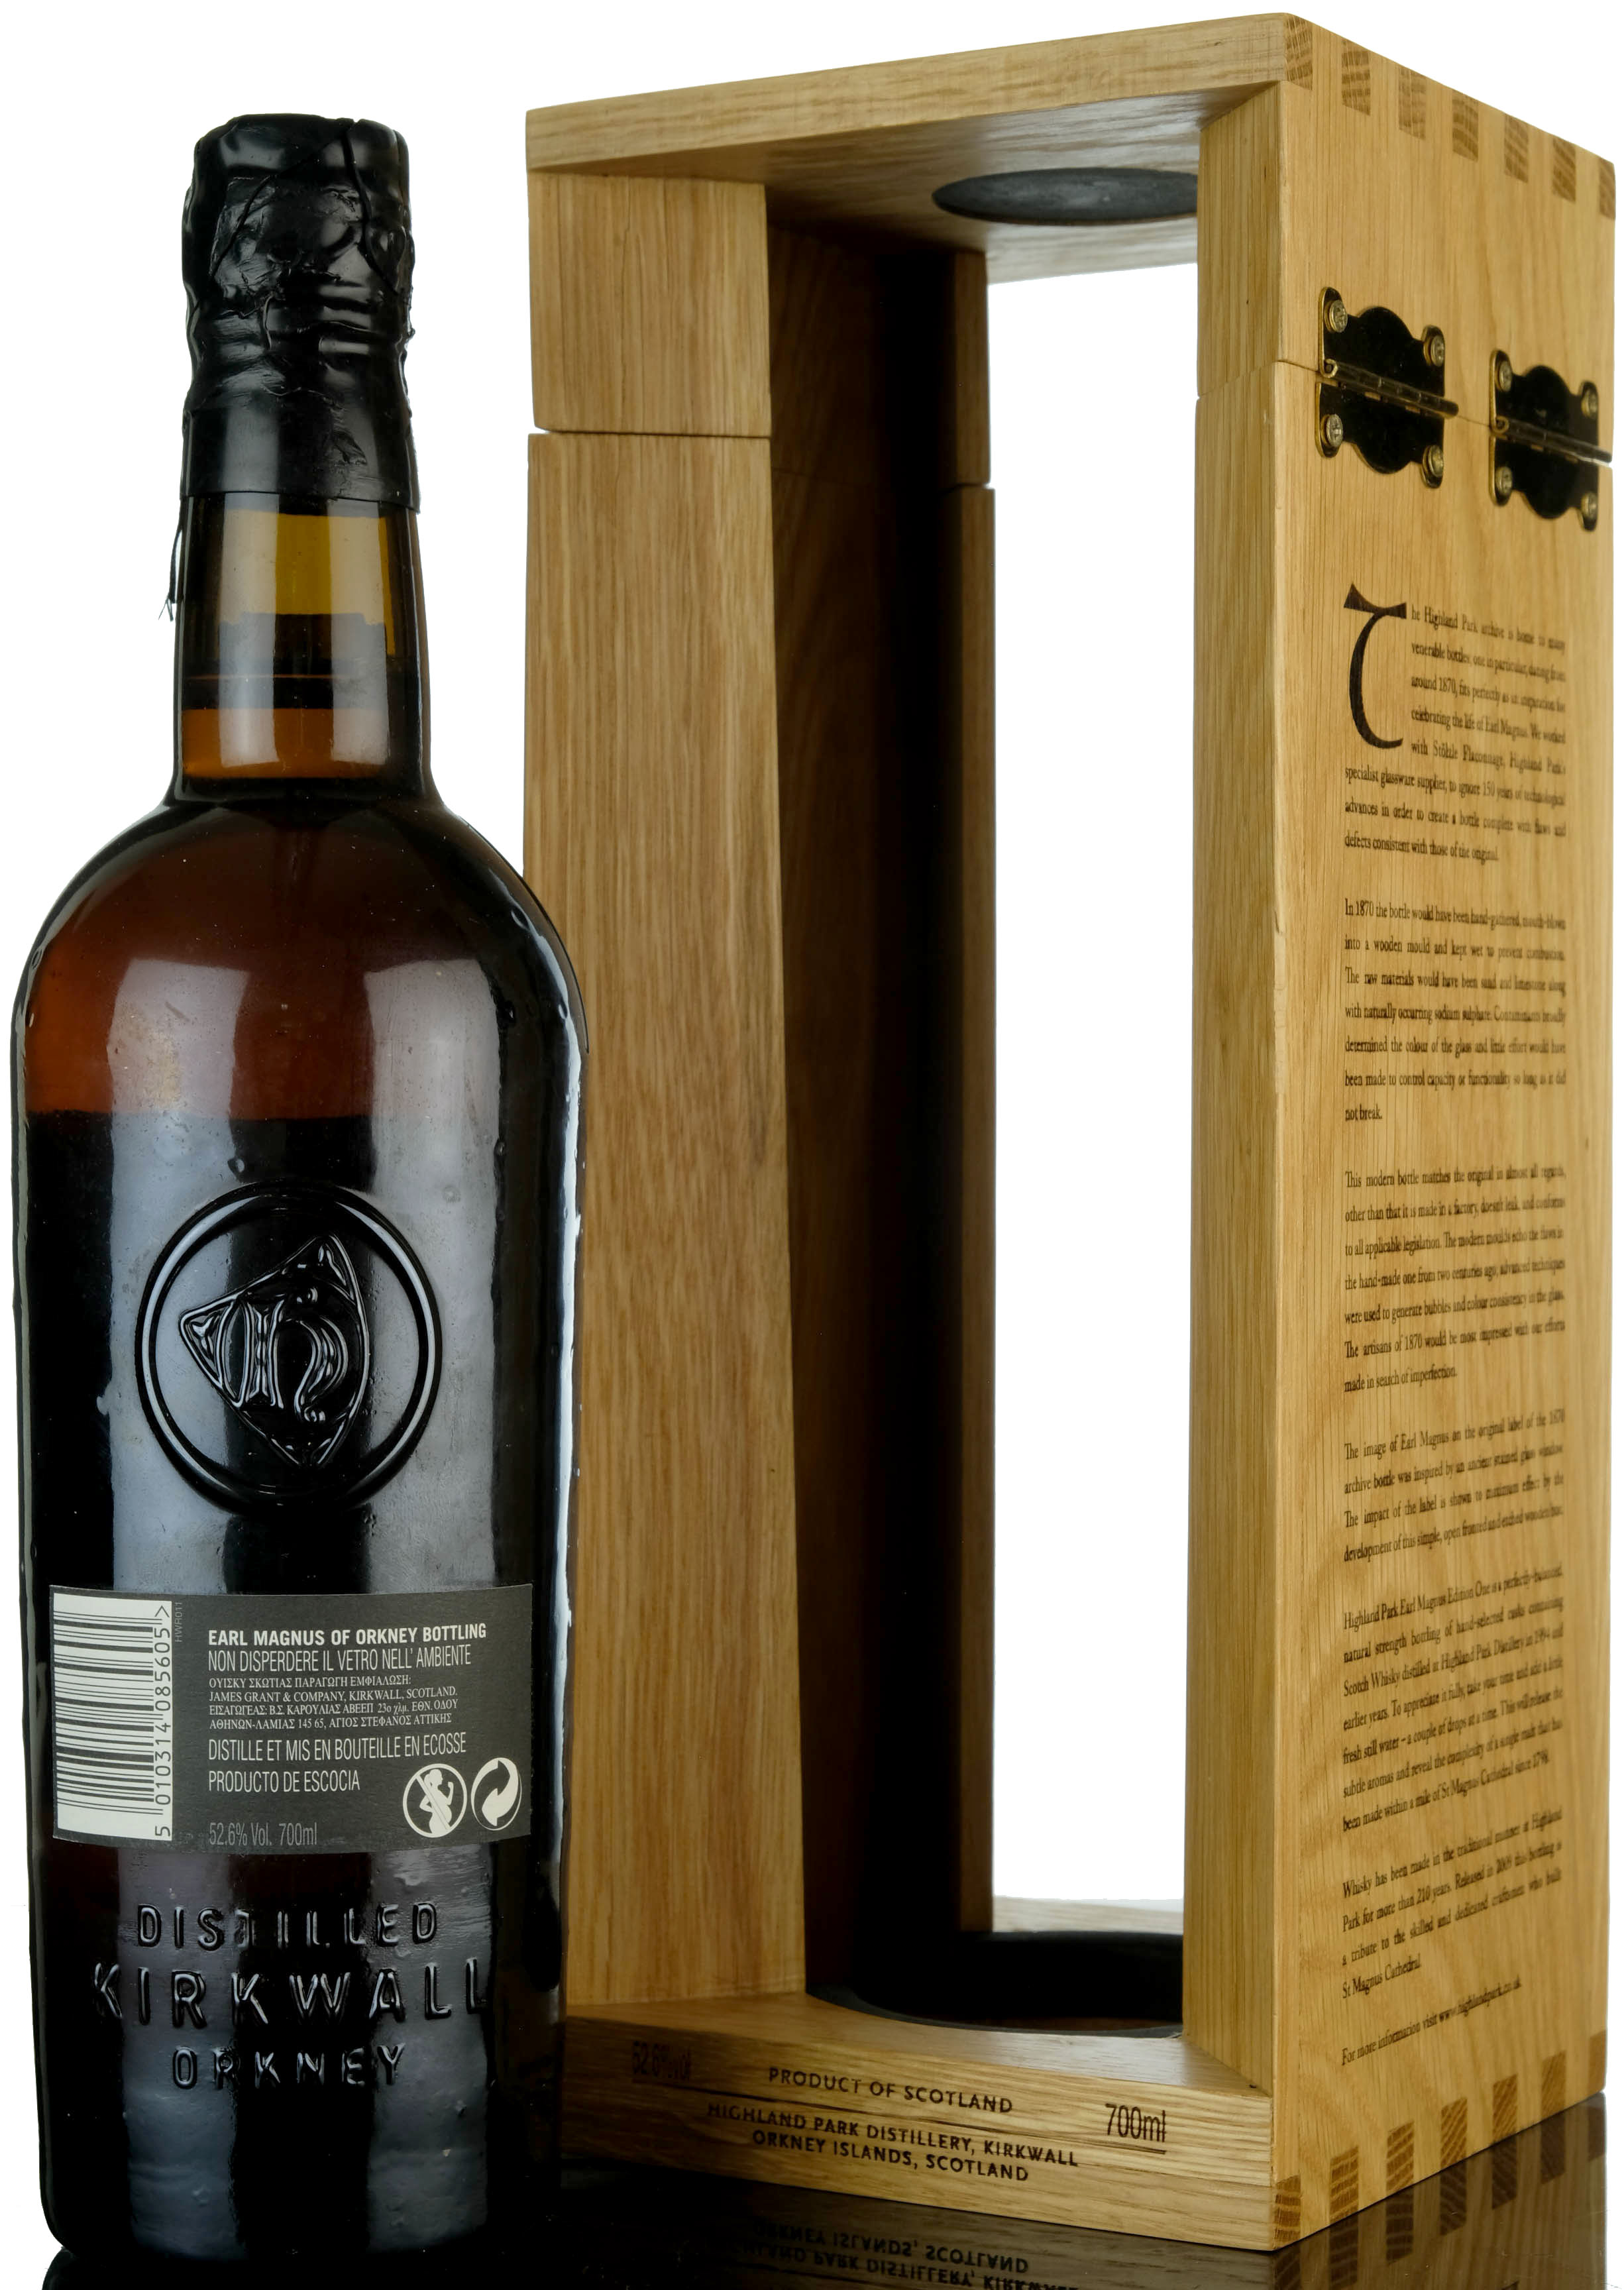 highland park 15 year old - earl magnus - first edition